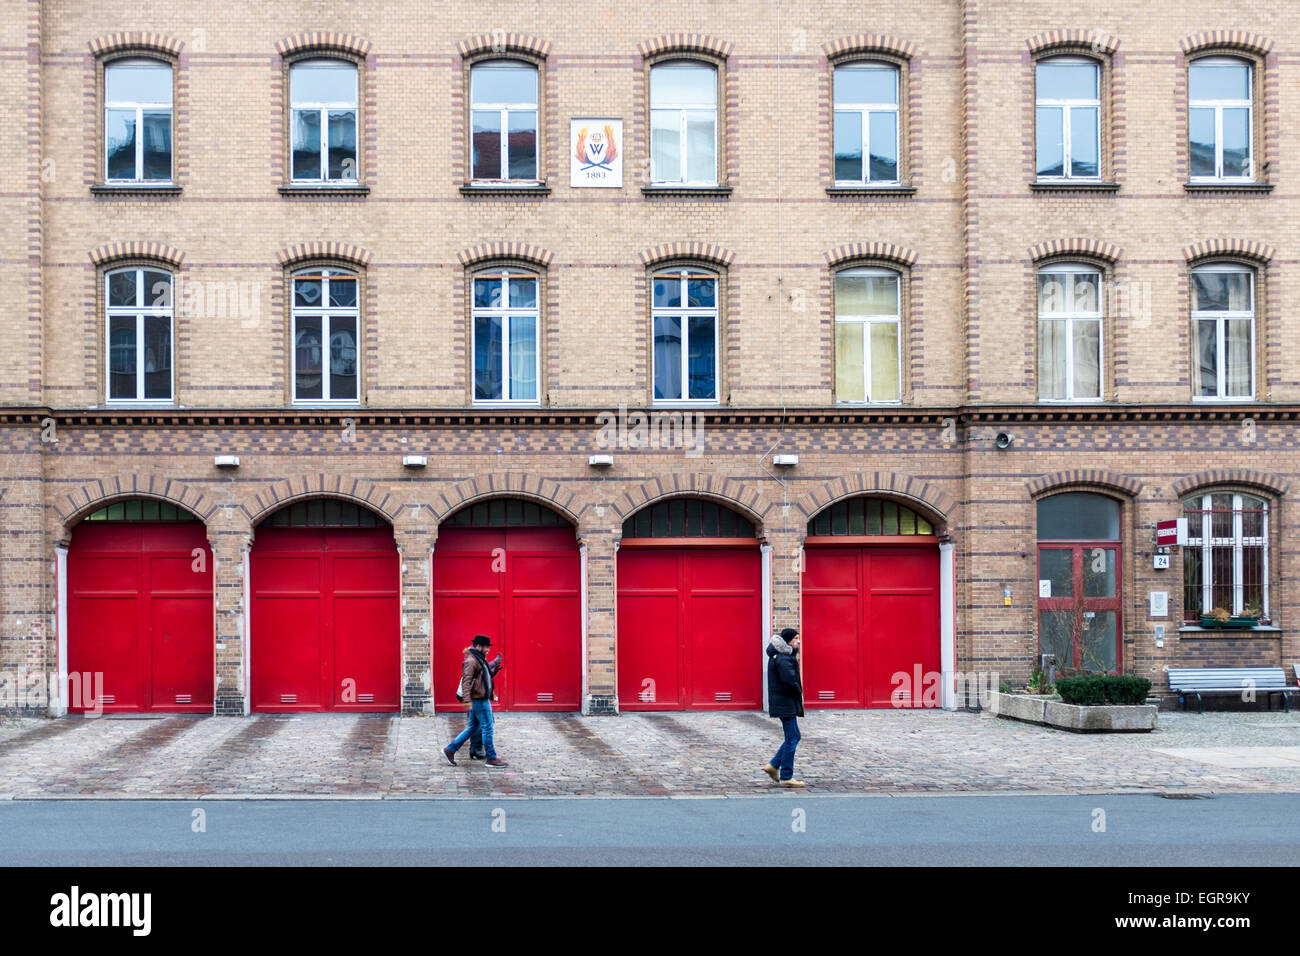 Berlin old fire station (1883) still operational - brick building with red doors in Oderberger strasse, Prenzlauerberg, - Stock Image